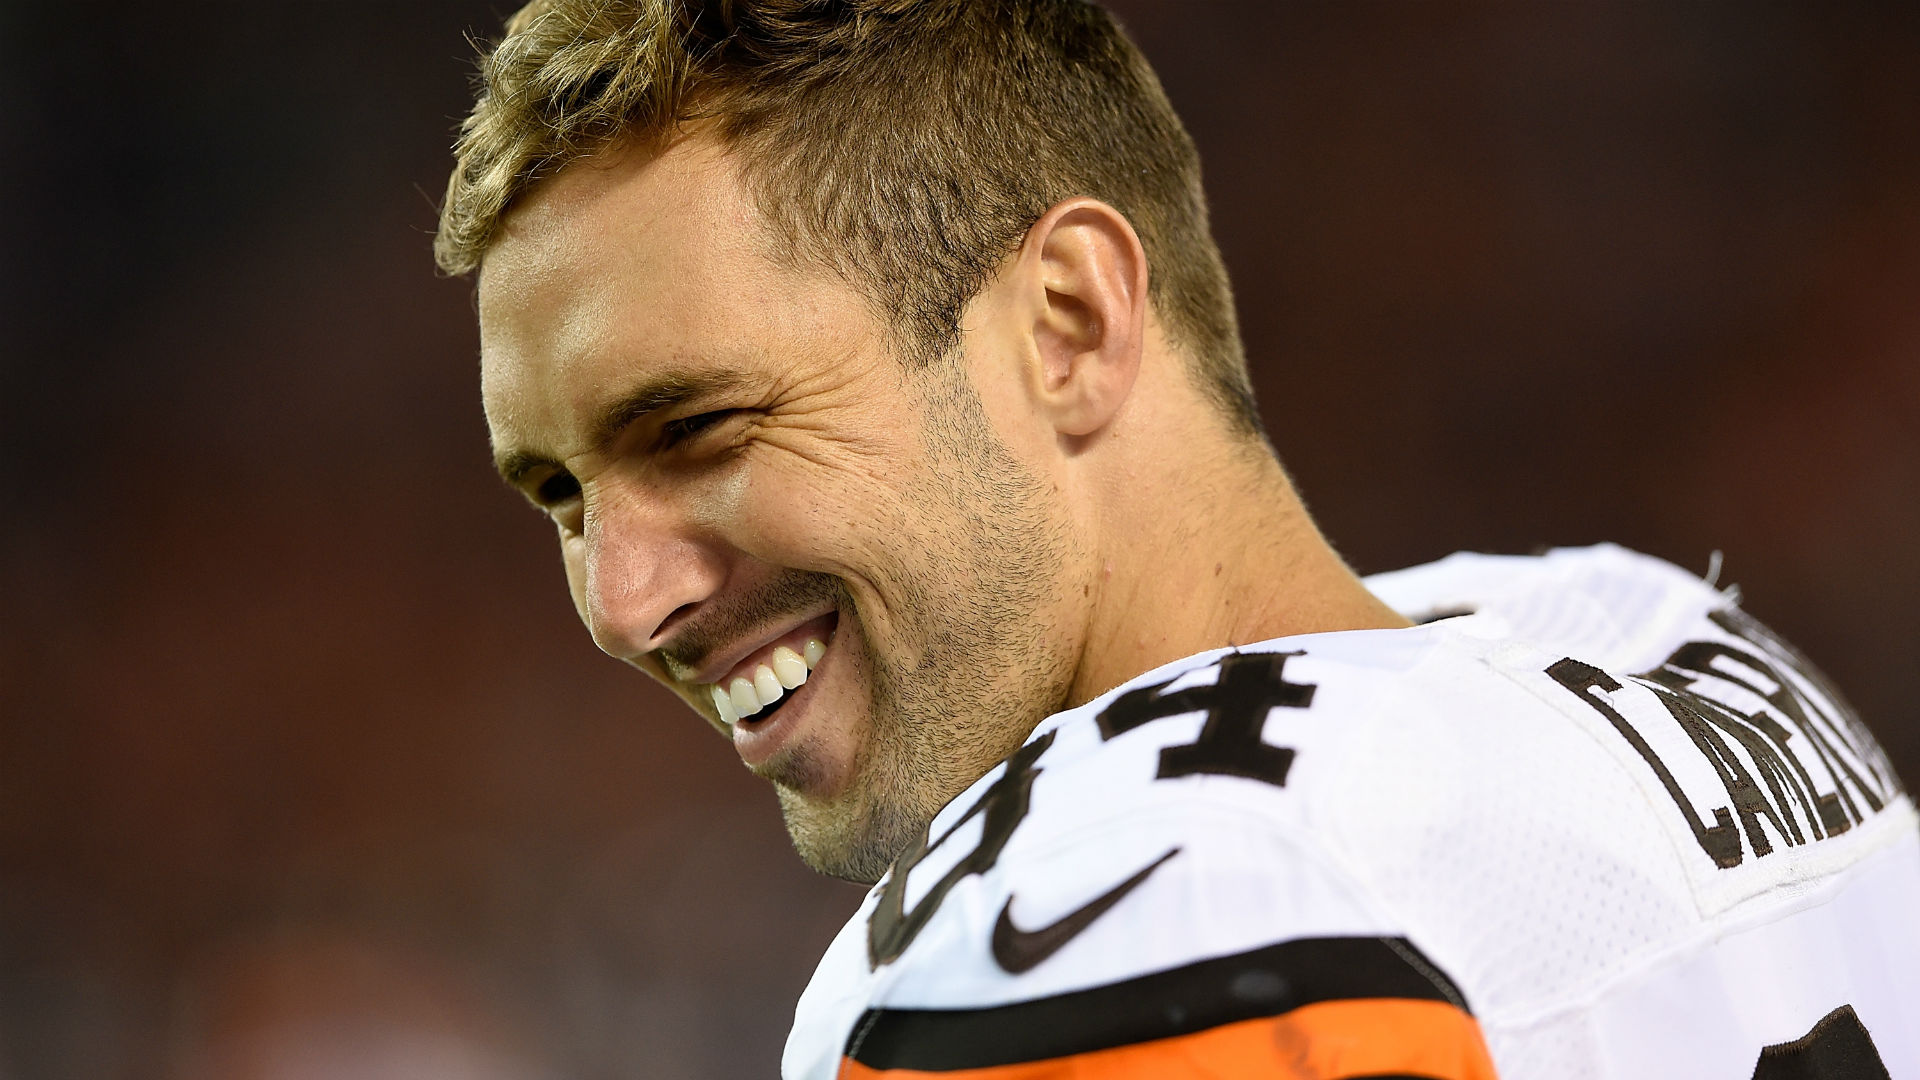 Ex NFL TE Jordan Cameron Most players don t love football